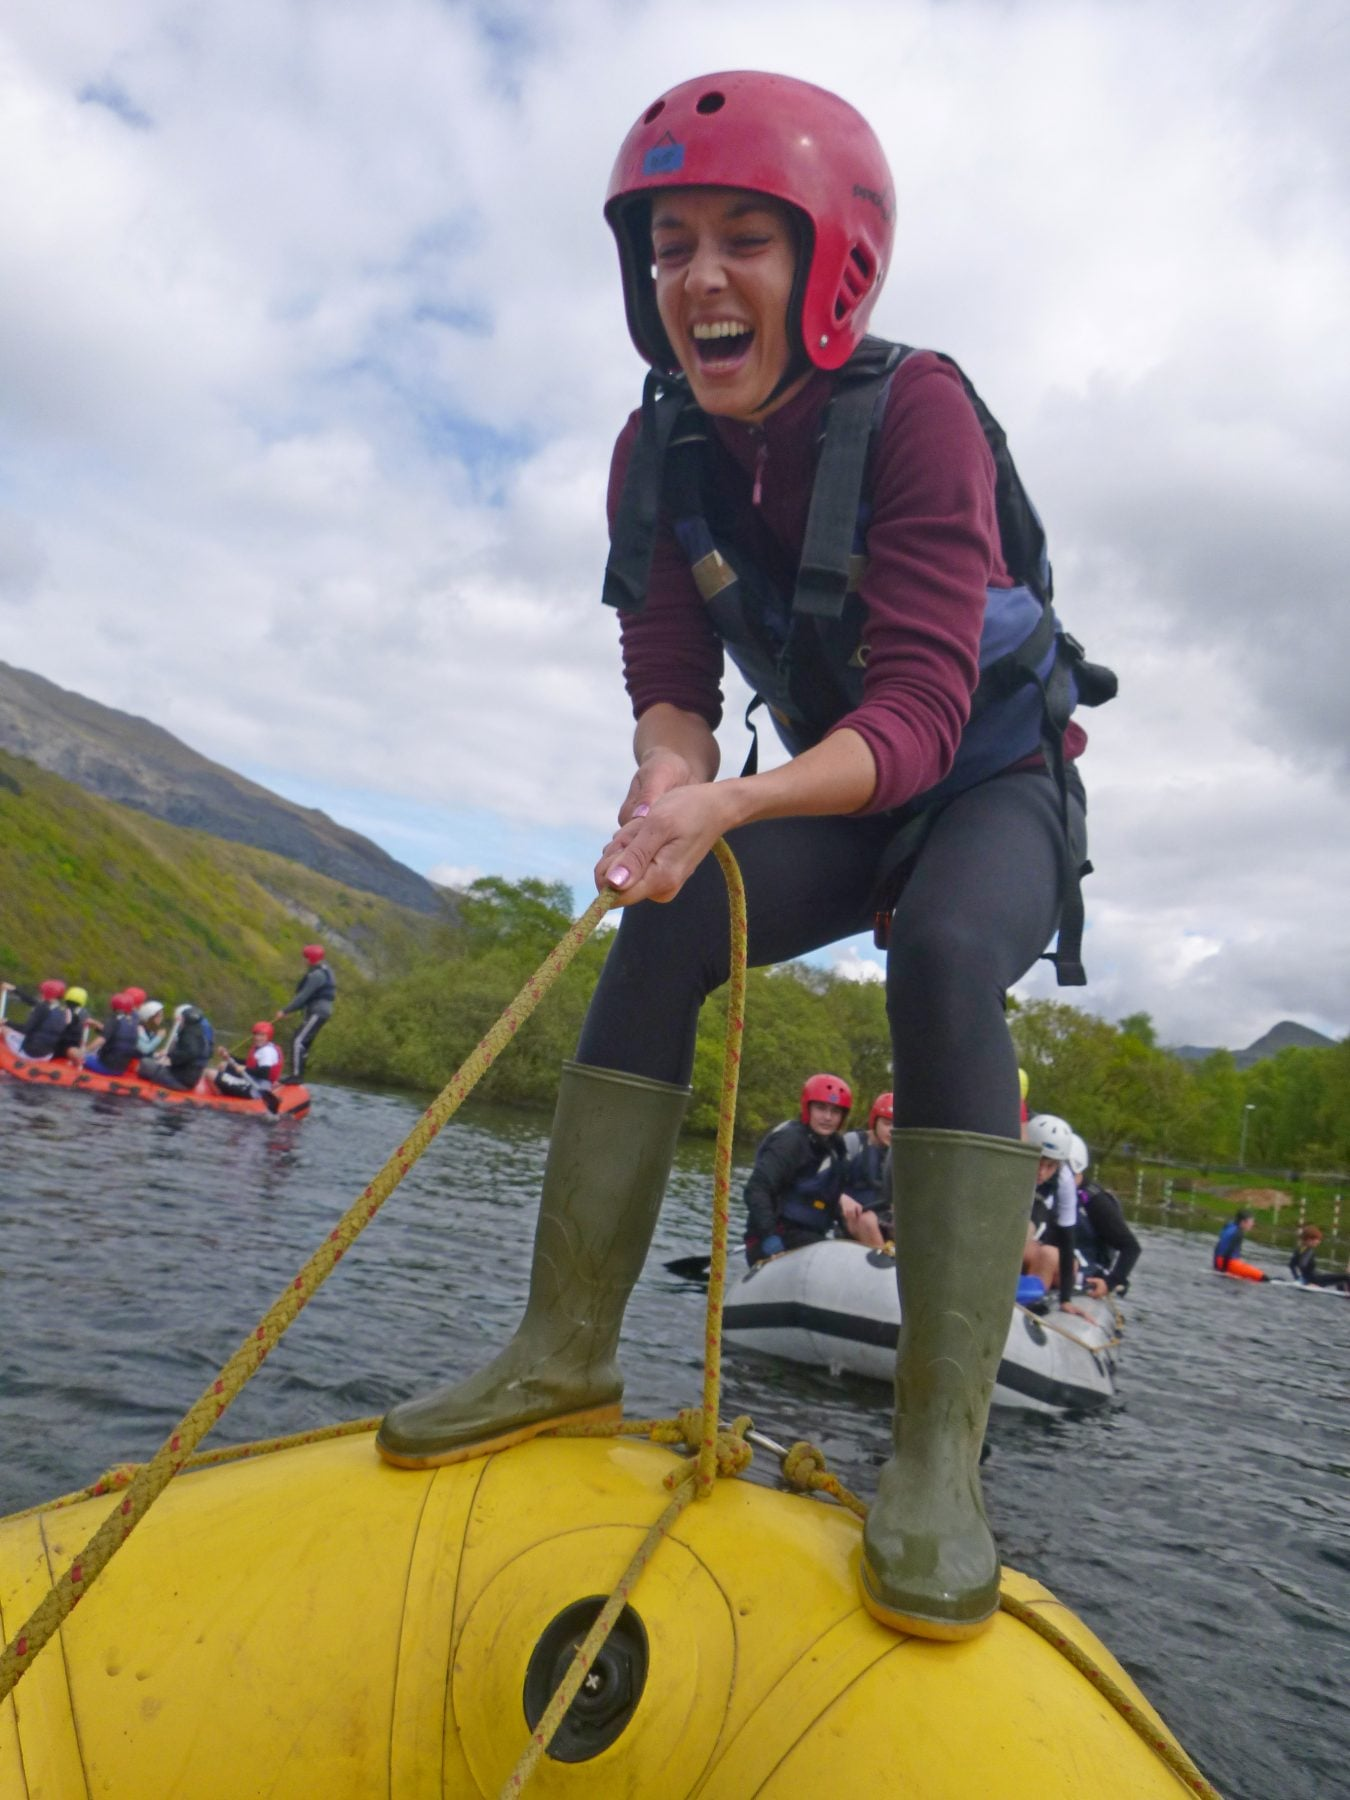 Balancing on yellow raft, secondary school pupil laughing, canoe floating on Padarn lake.